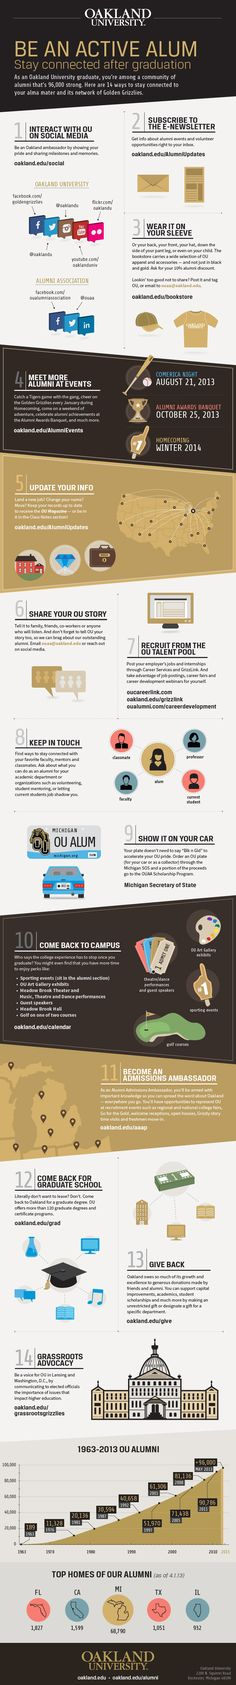 Stay Connected After Graduation - Alumni Engagement - Oakland University